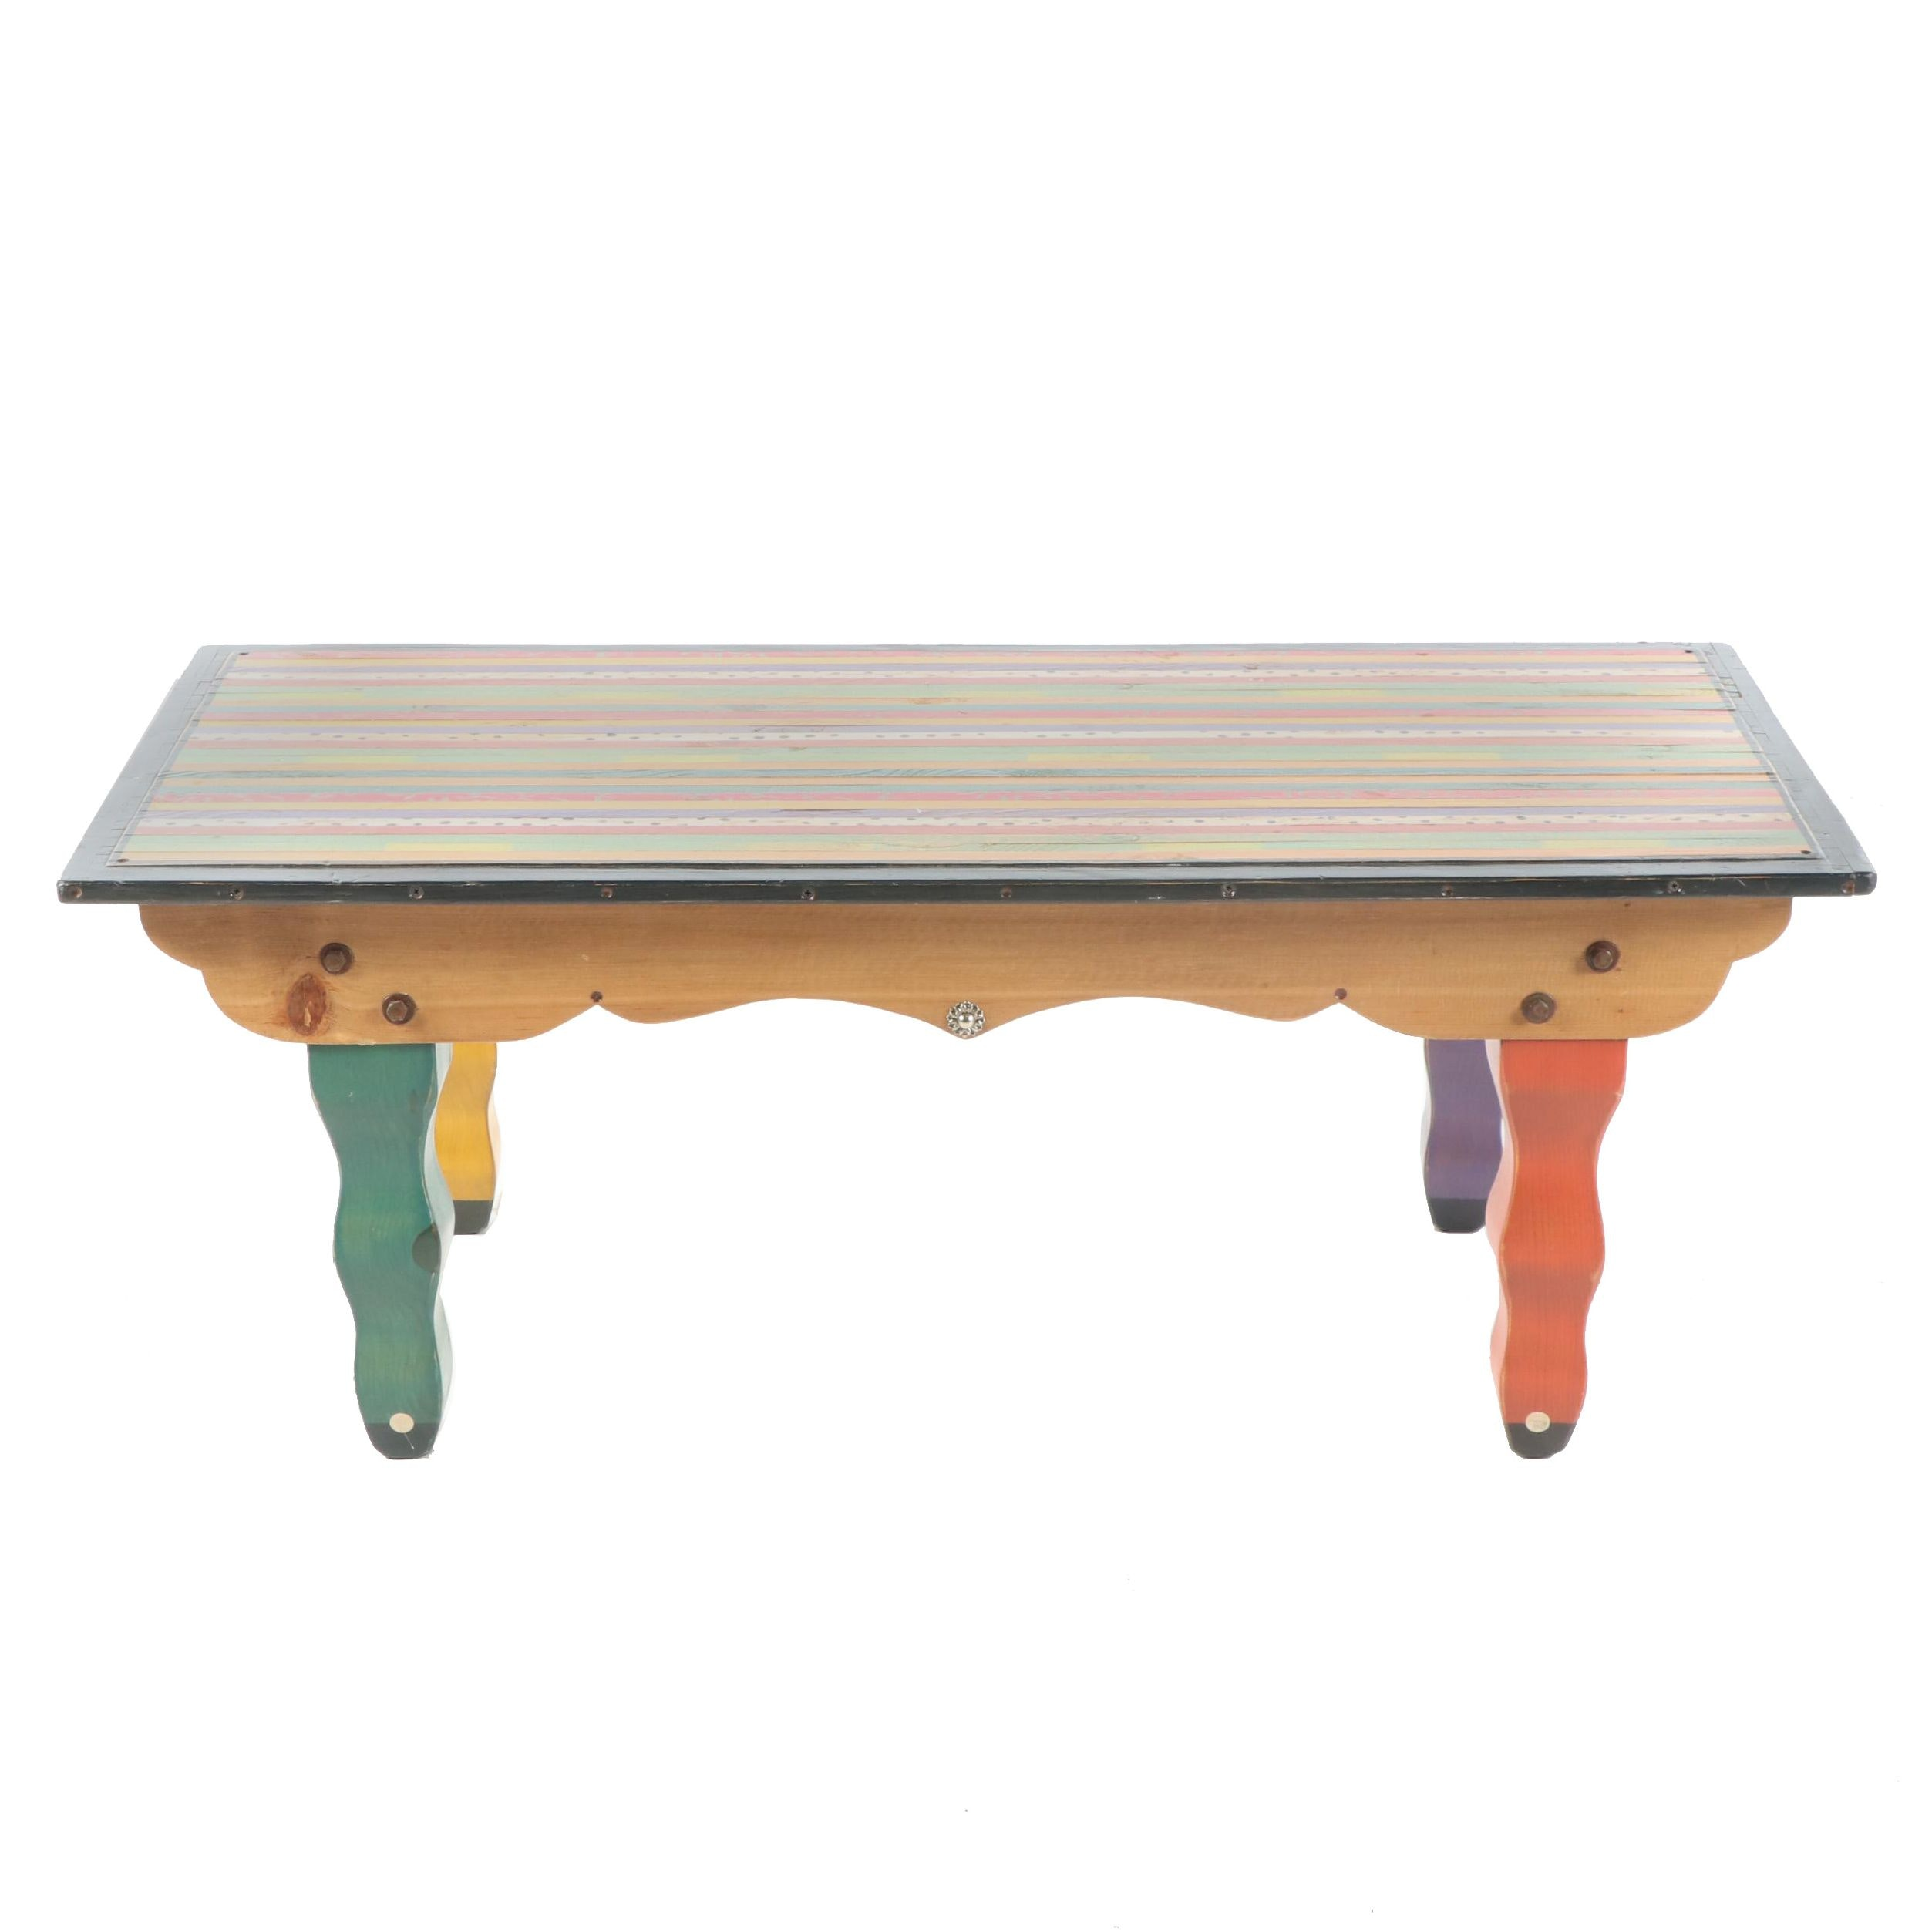 Hand-Painted Coffee Table by Shoestring Creations, 21st Century